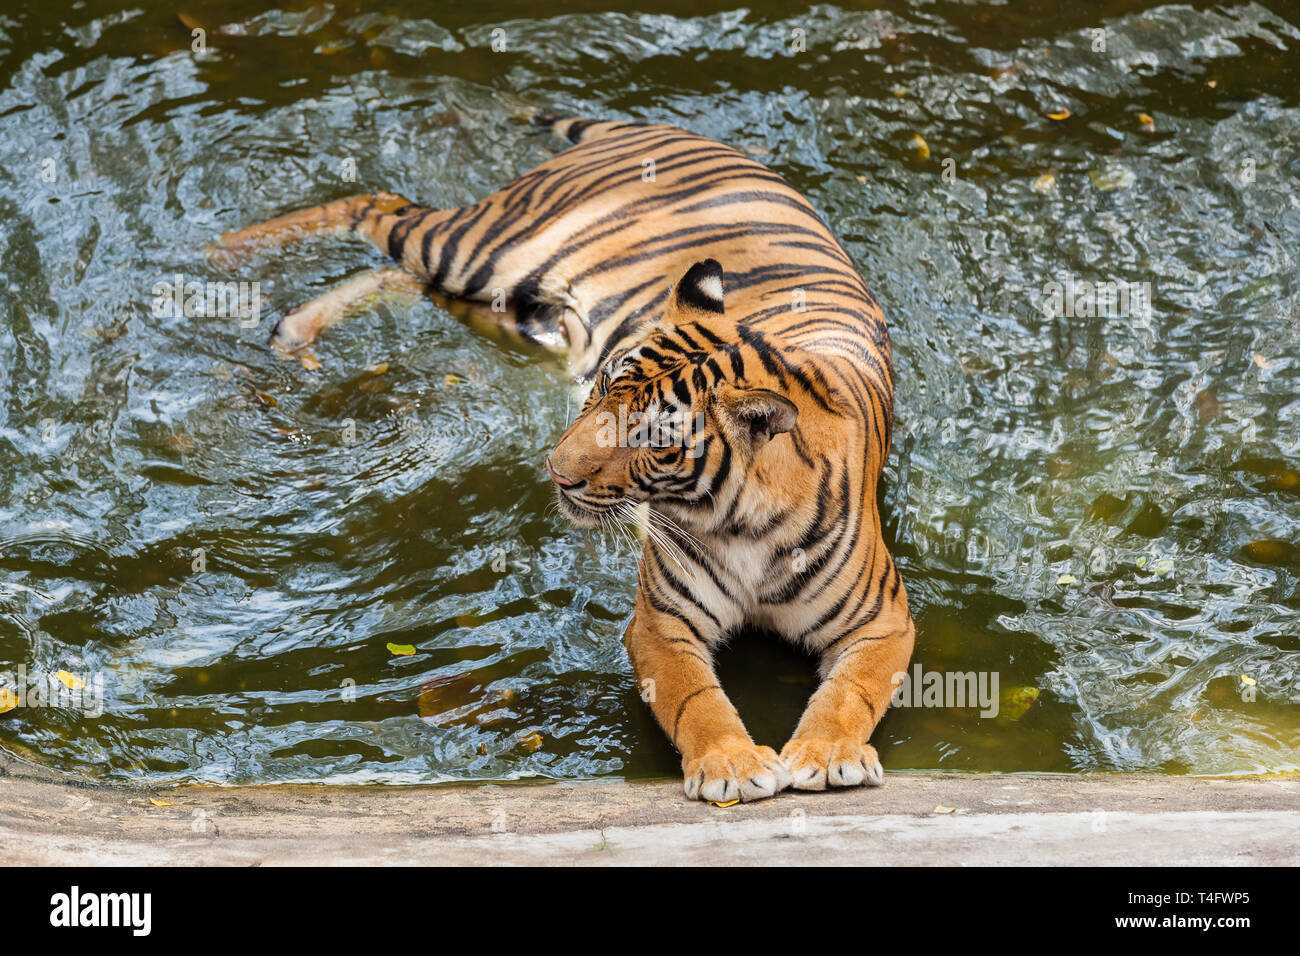 Young Tiger bathing in the water Stock Photo